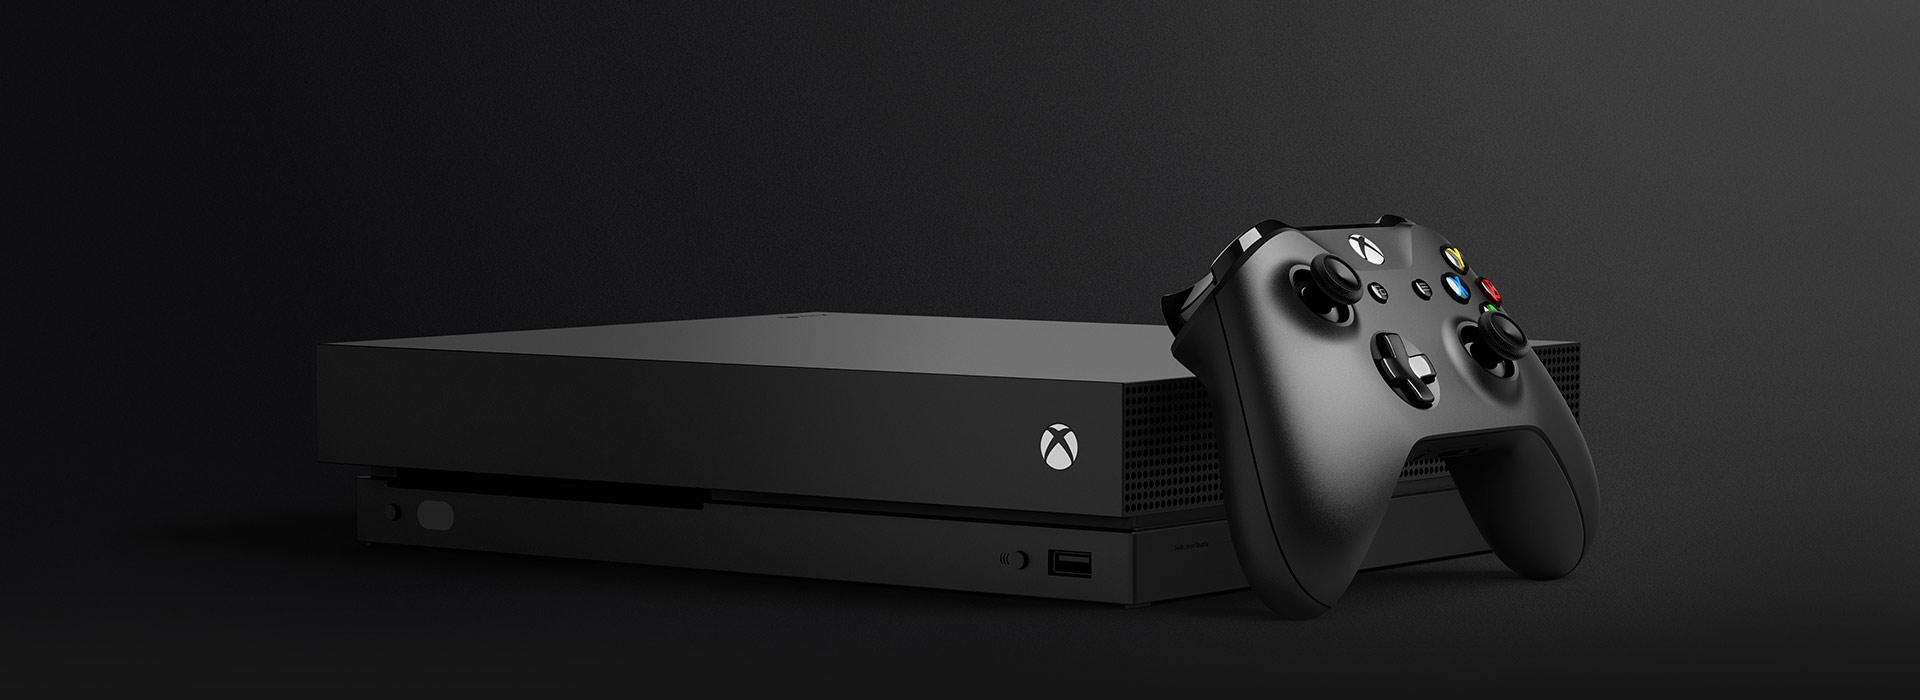 Xbox One X with Xbox One wireless controller